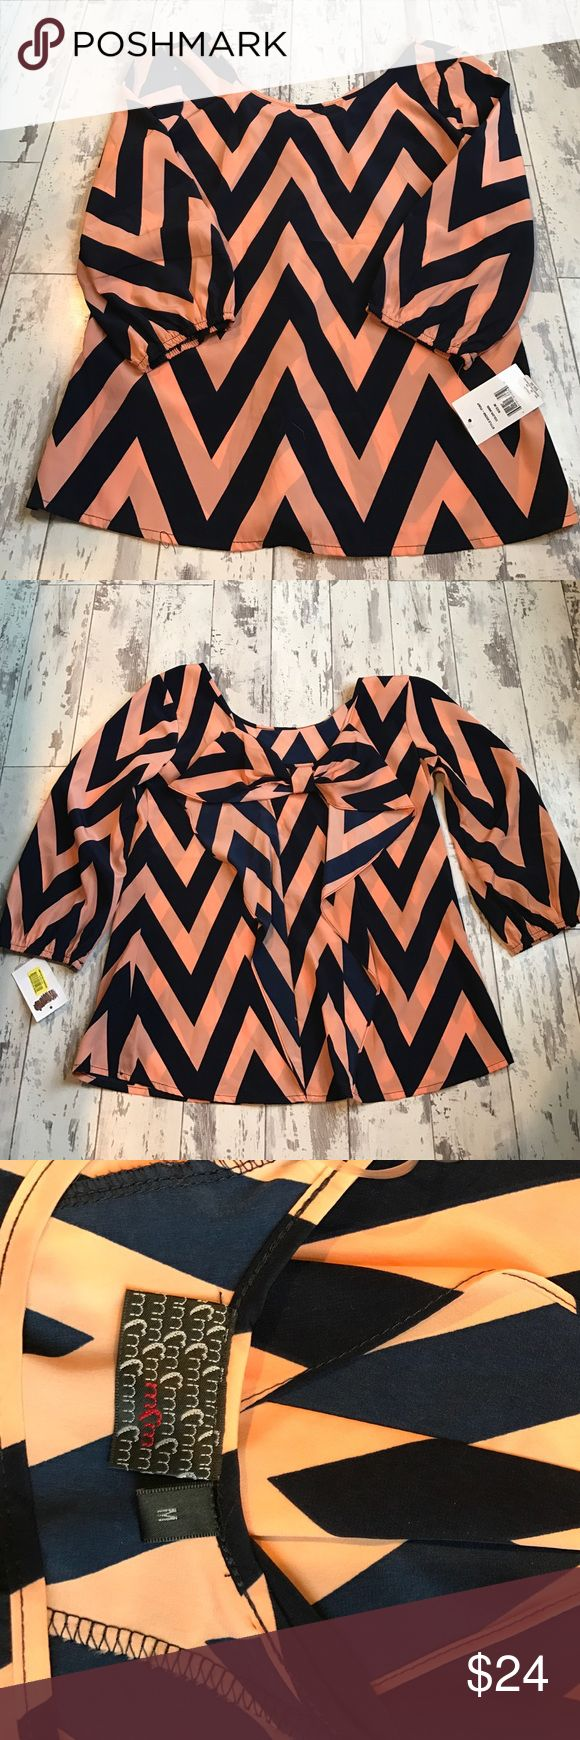 Chevron top Navy blue & peach chevron top with bow on back. Size medium, new with tags. From Dillard's. mm Tops Blouses